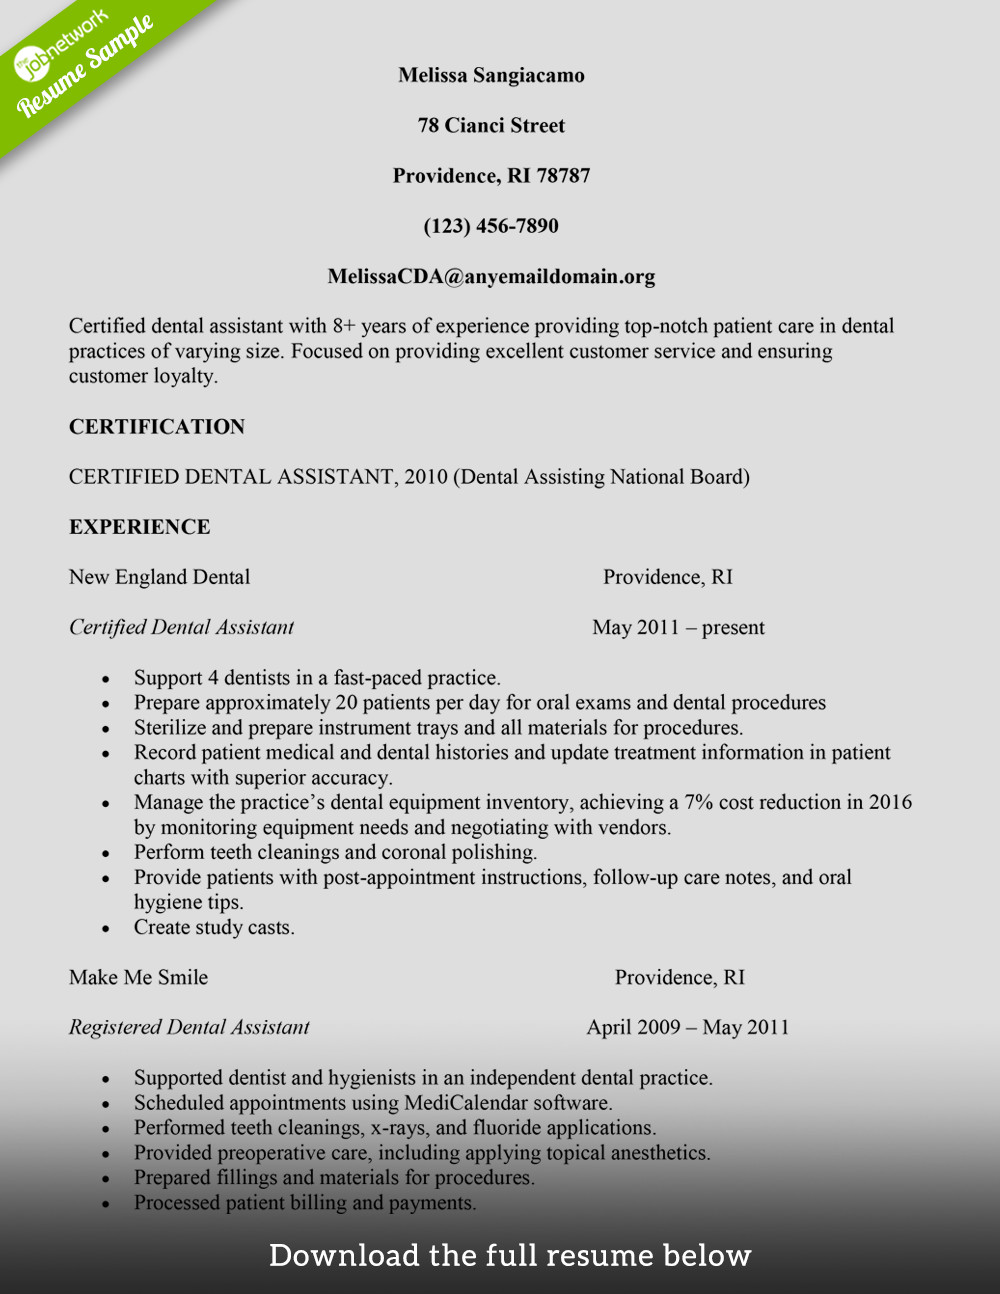 Dental assisting Resume Templates How to Build A Great Dental assistant Resume Examples